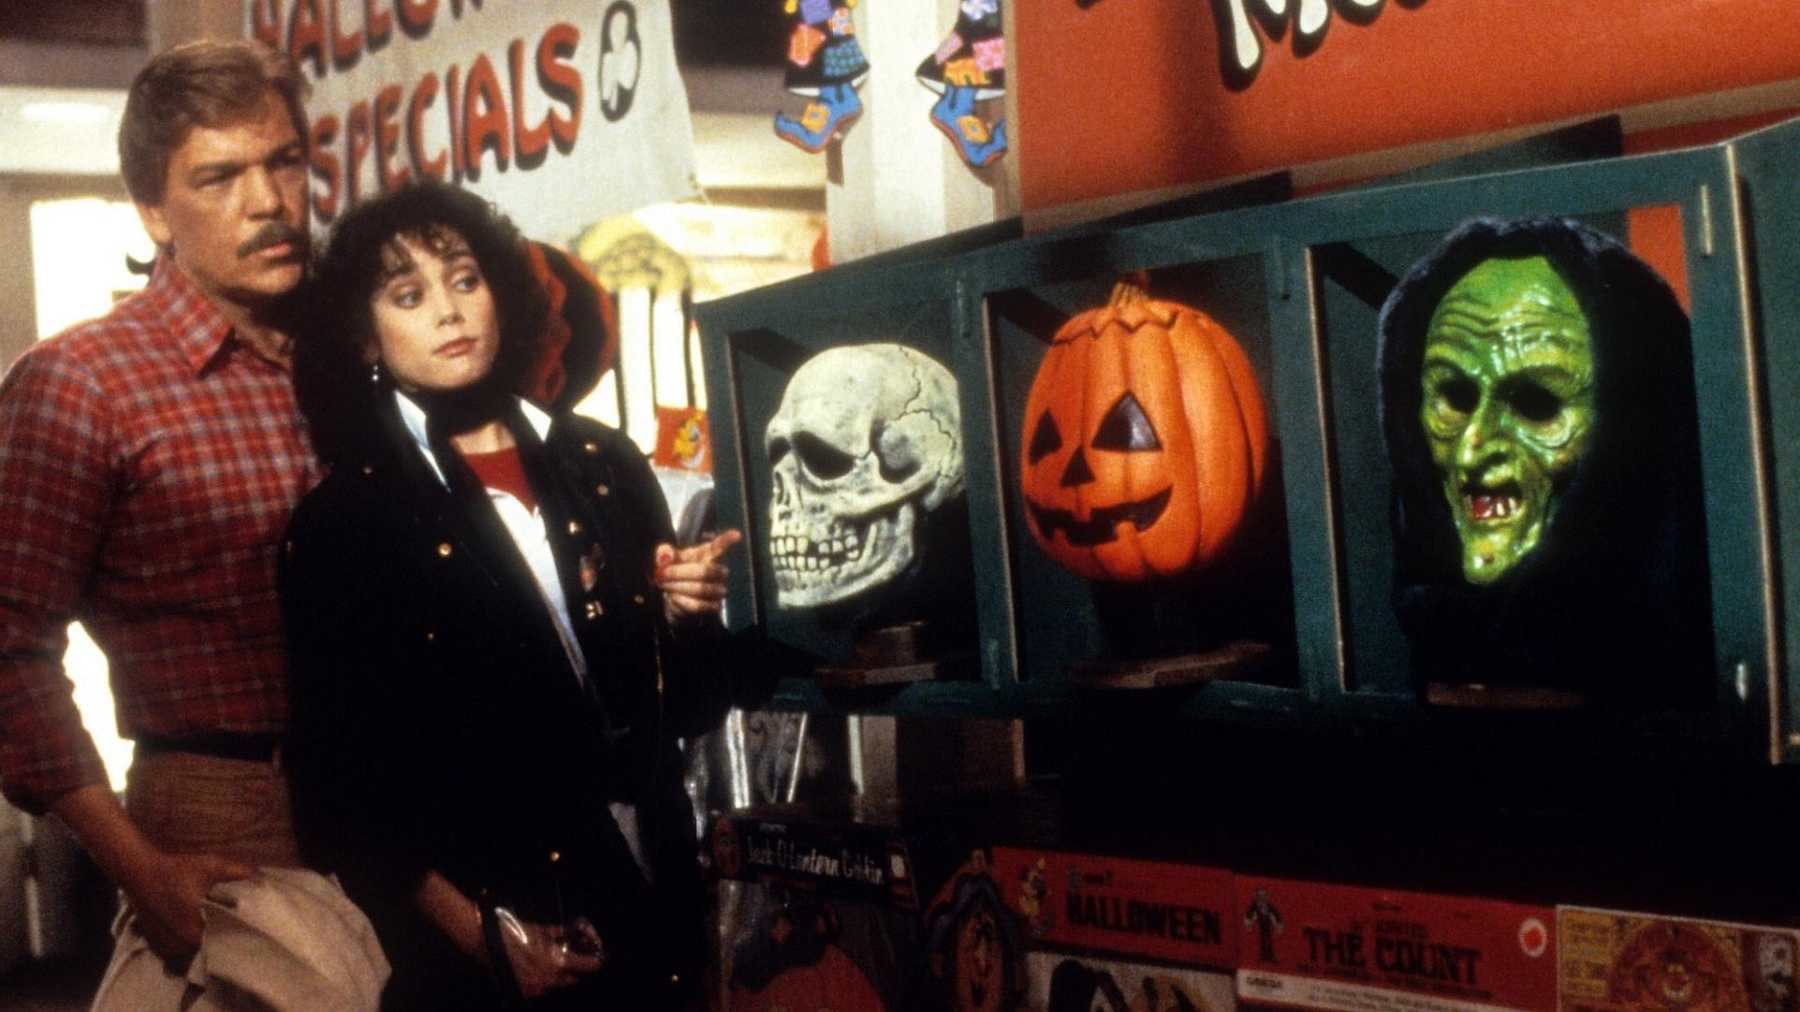 Halloween 3: Season of the Witch is an Underrated Holiday Classic